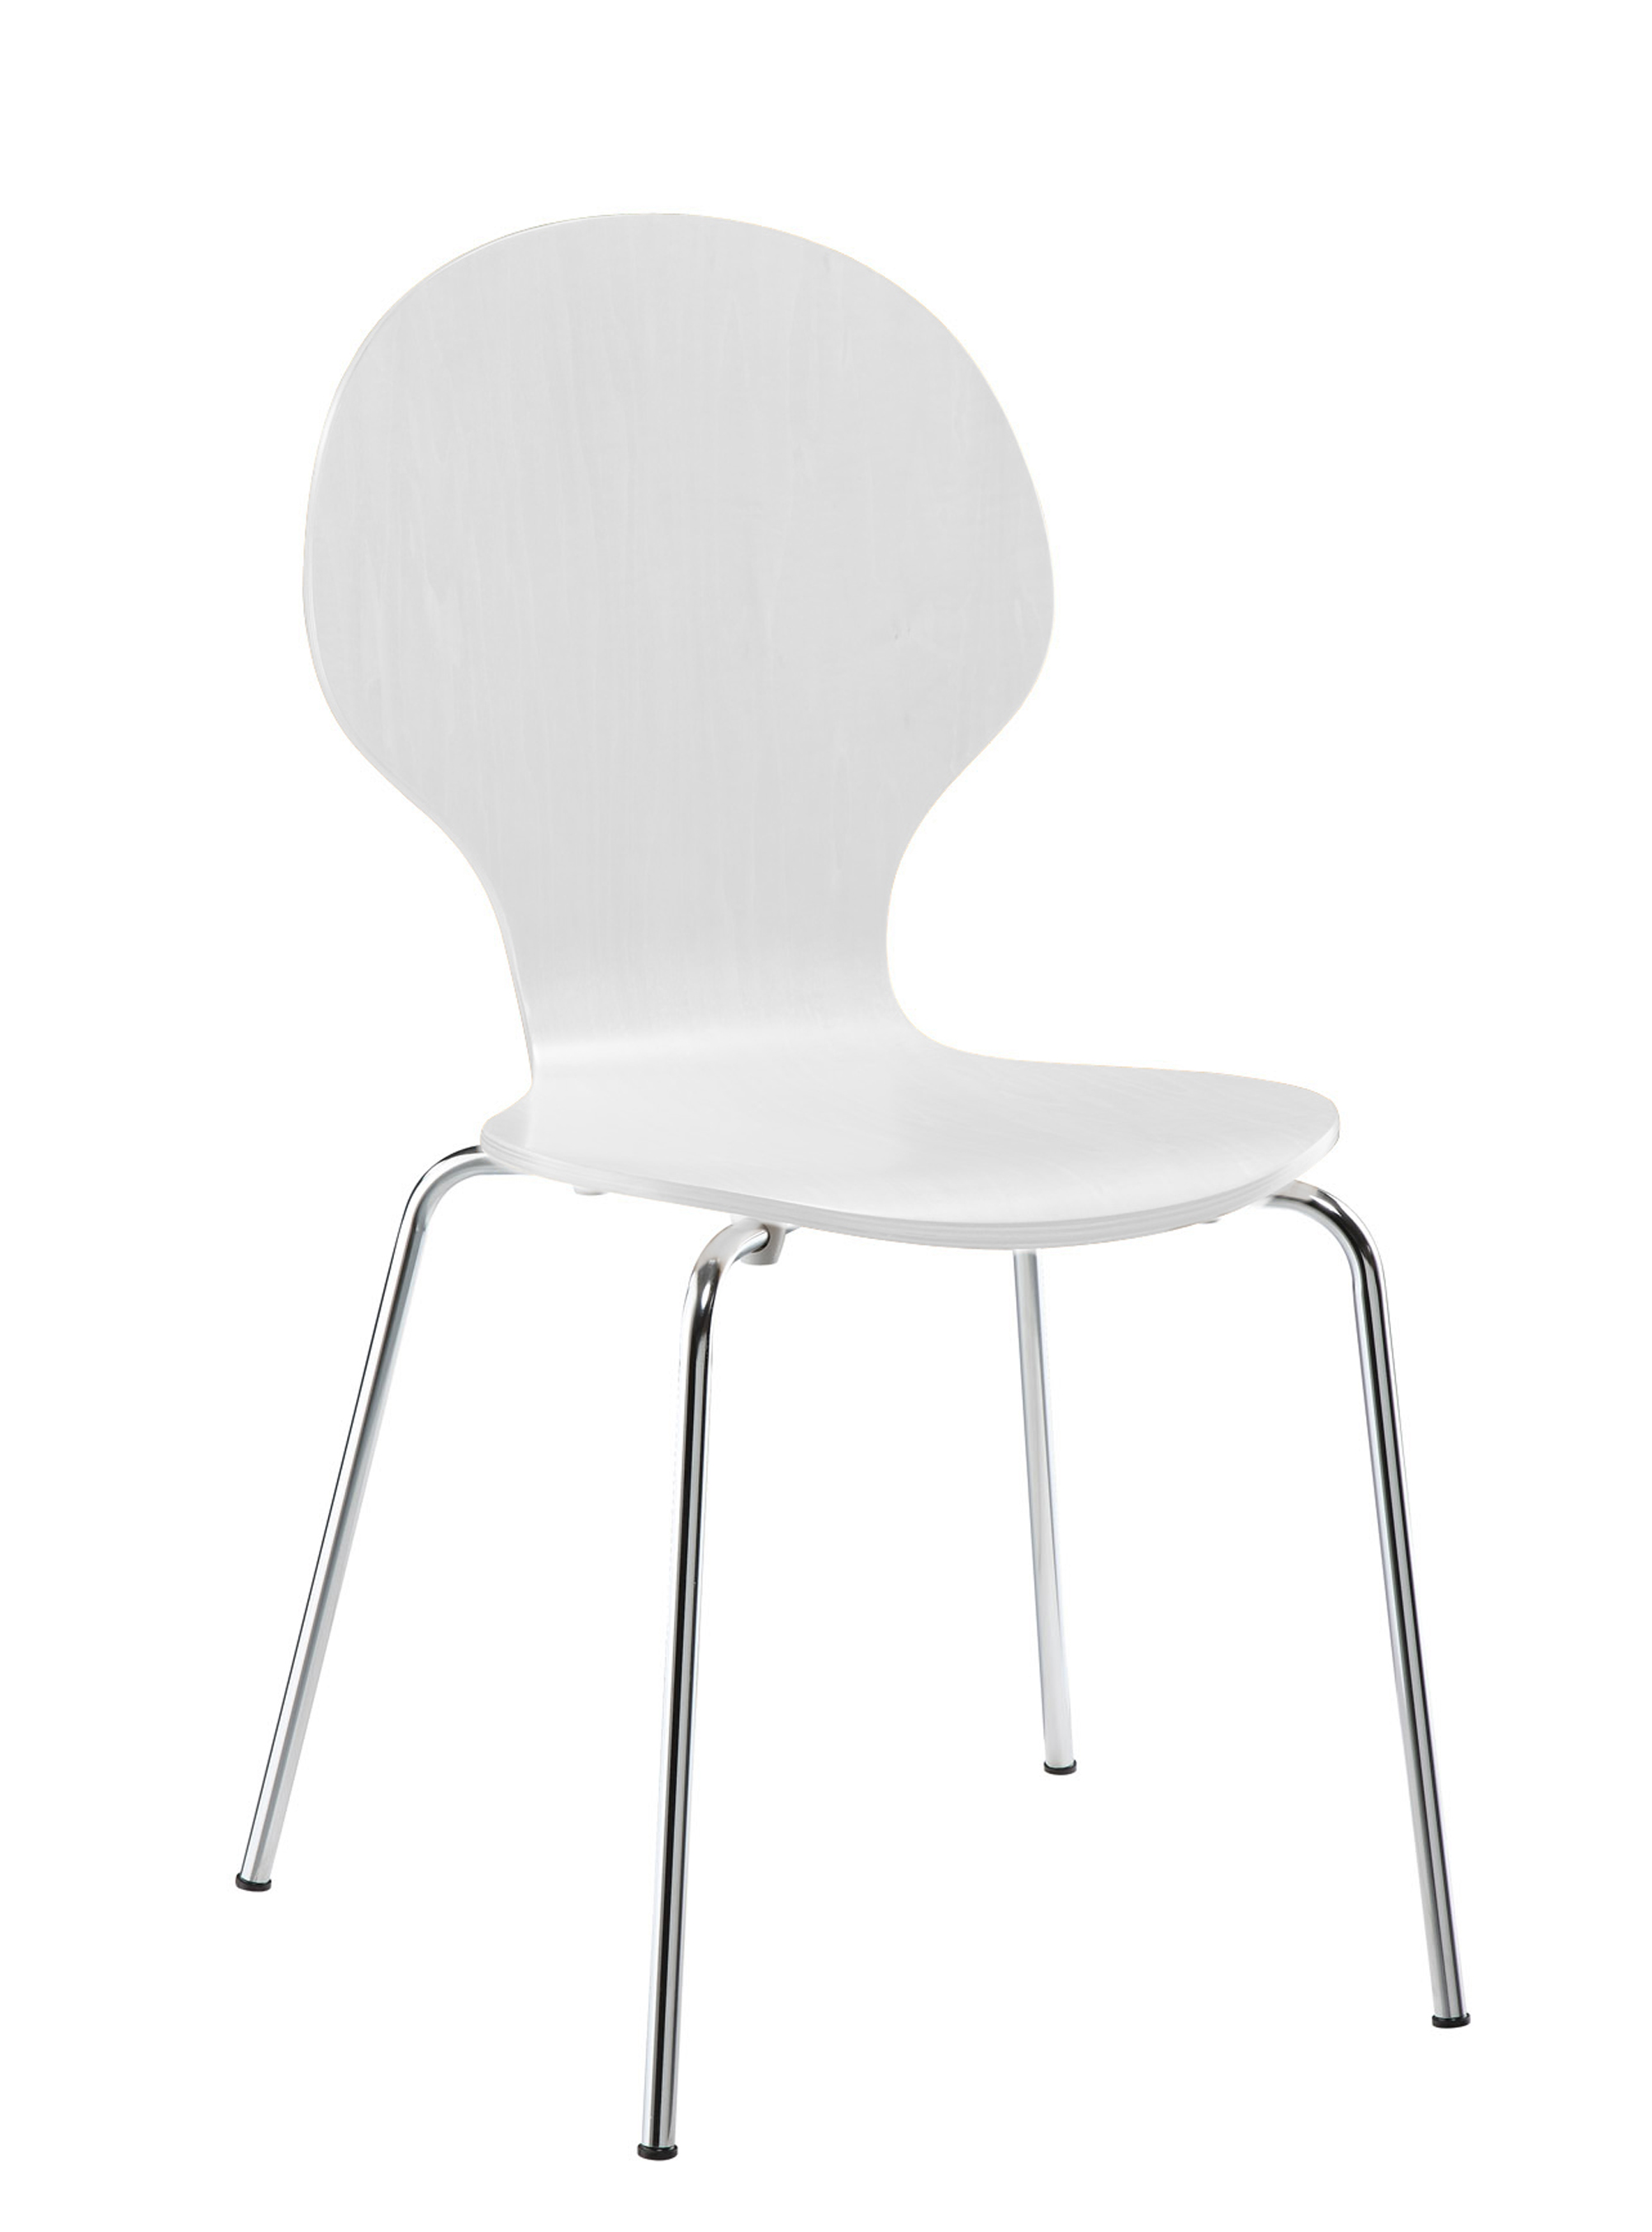 dining chair booster seat kmart discount covers for weddings spin prod 1154442812 hei333 andwid333 andop sharpen1